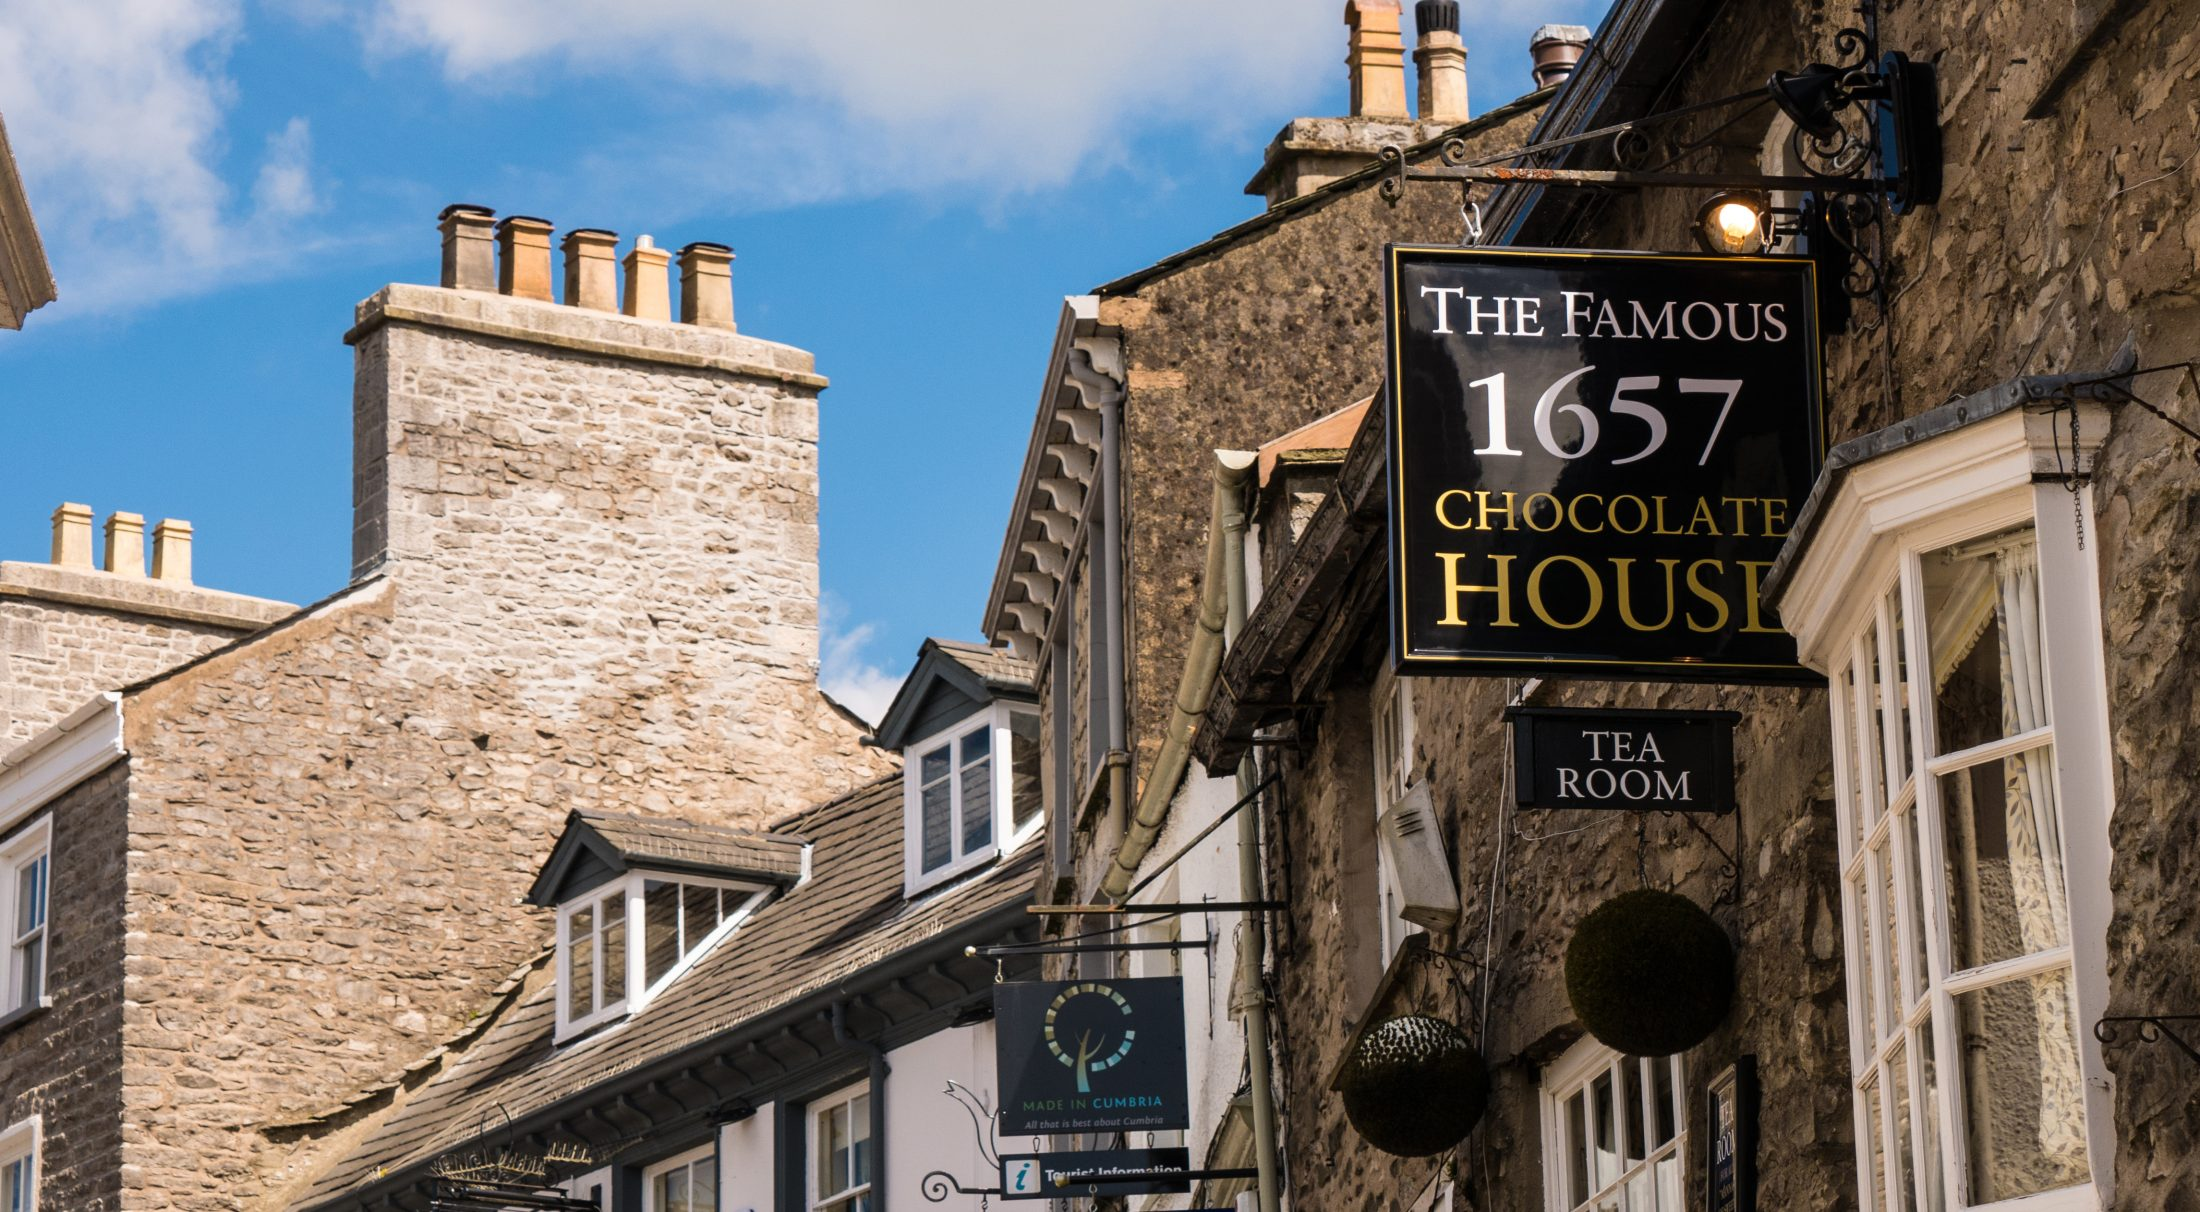 1657 Chocolate House dates from the 1630s on the cobbled streets of Branthwaite Brow and